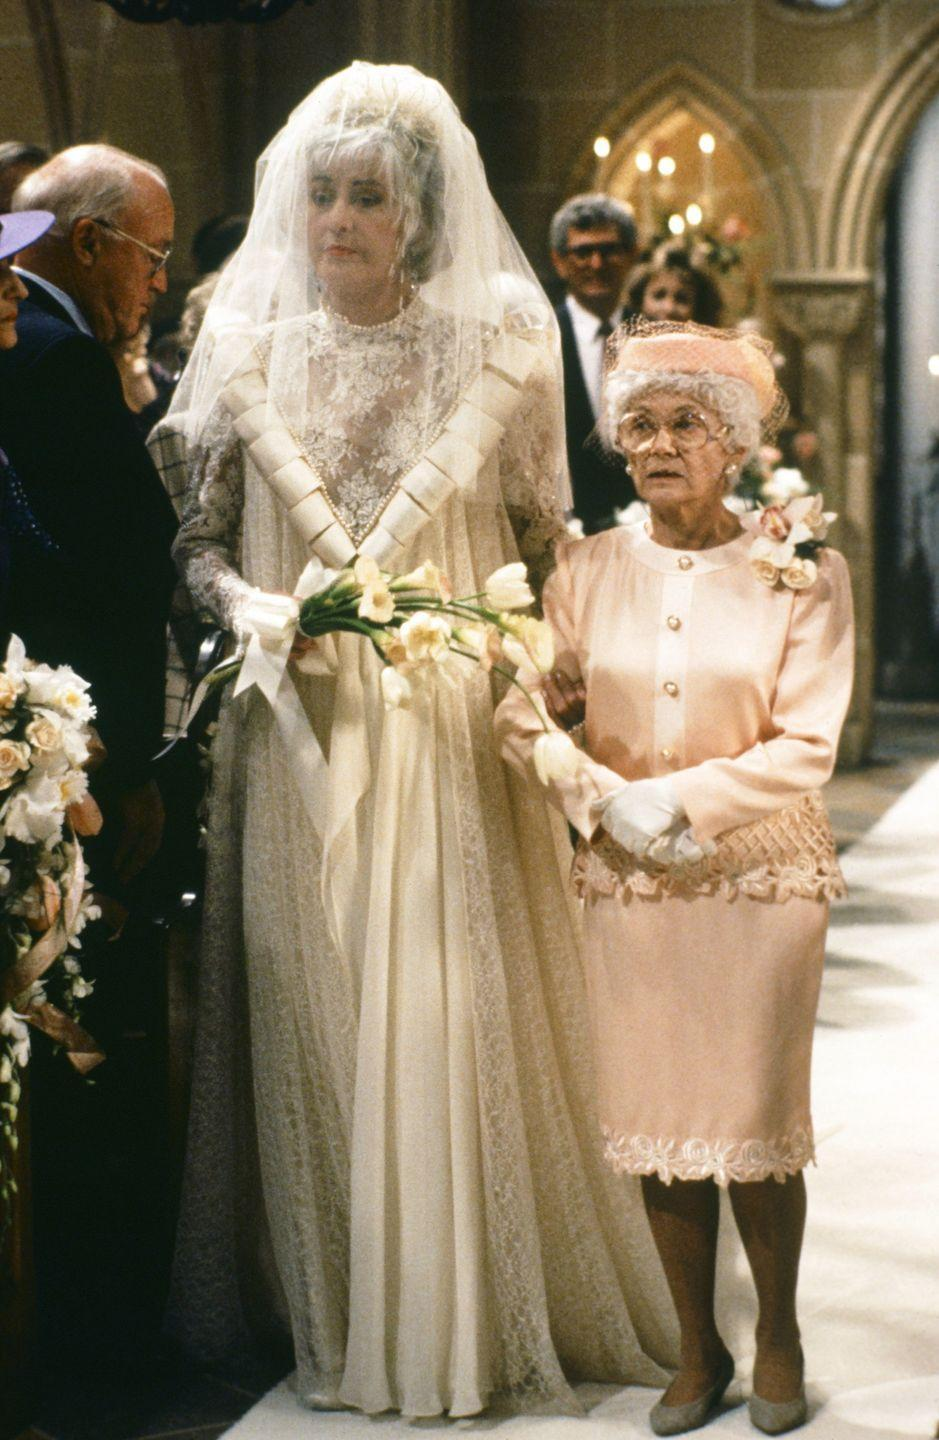 <p>When Dorothy leaves her roommates to marry Stan, the bride chose an old-fashioned look. Set with a lace illusion neck and high collar, Dorothy's dress featured panels of fabric that ran from her shoulders to her waist. Naturally, Sophia was by her side wearing a pale pink suit and pillbox cap. </p>